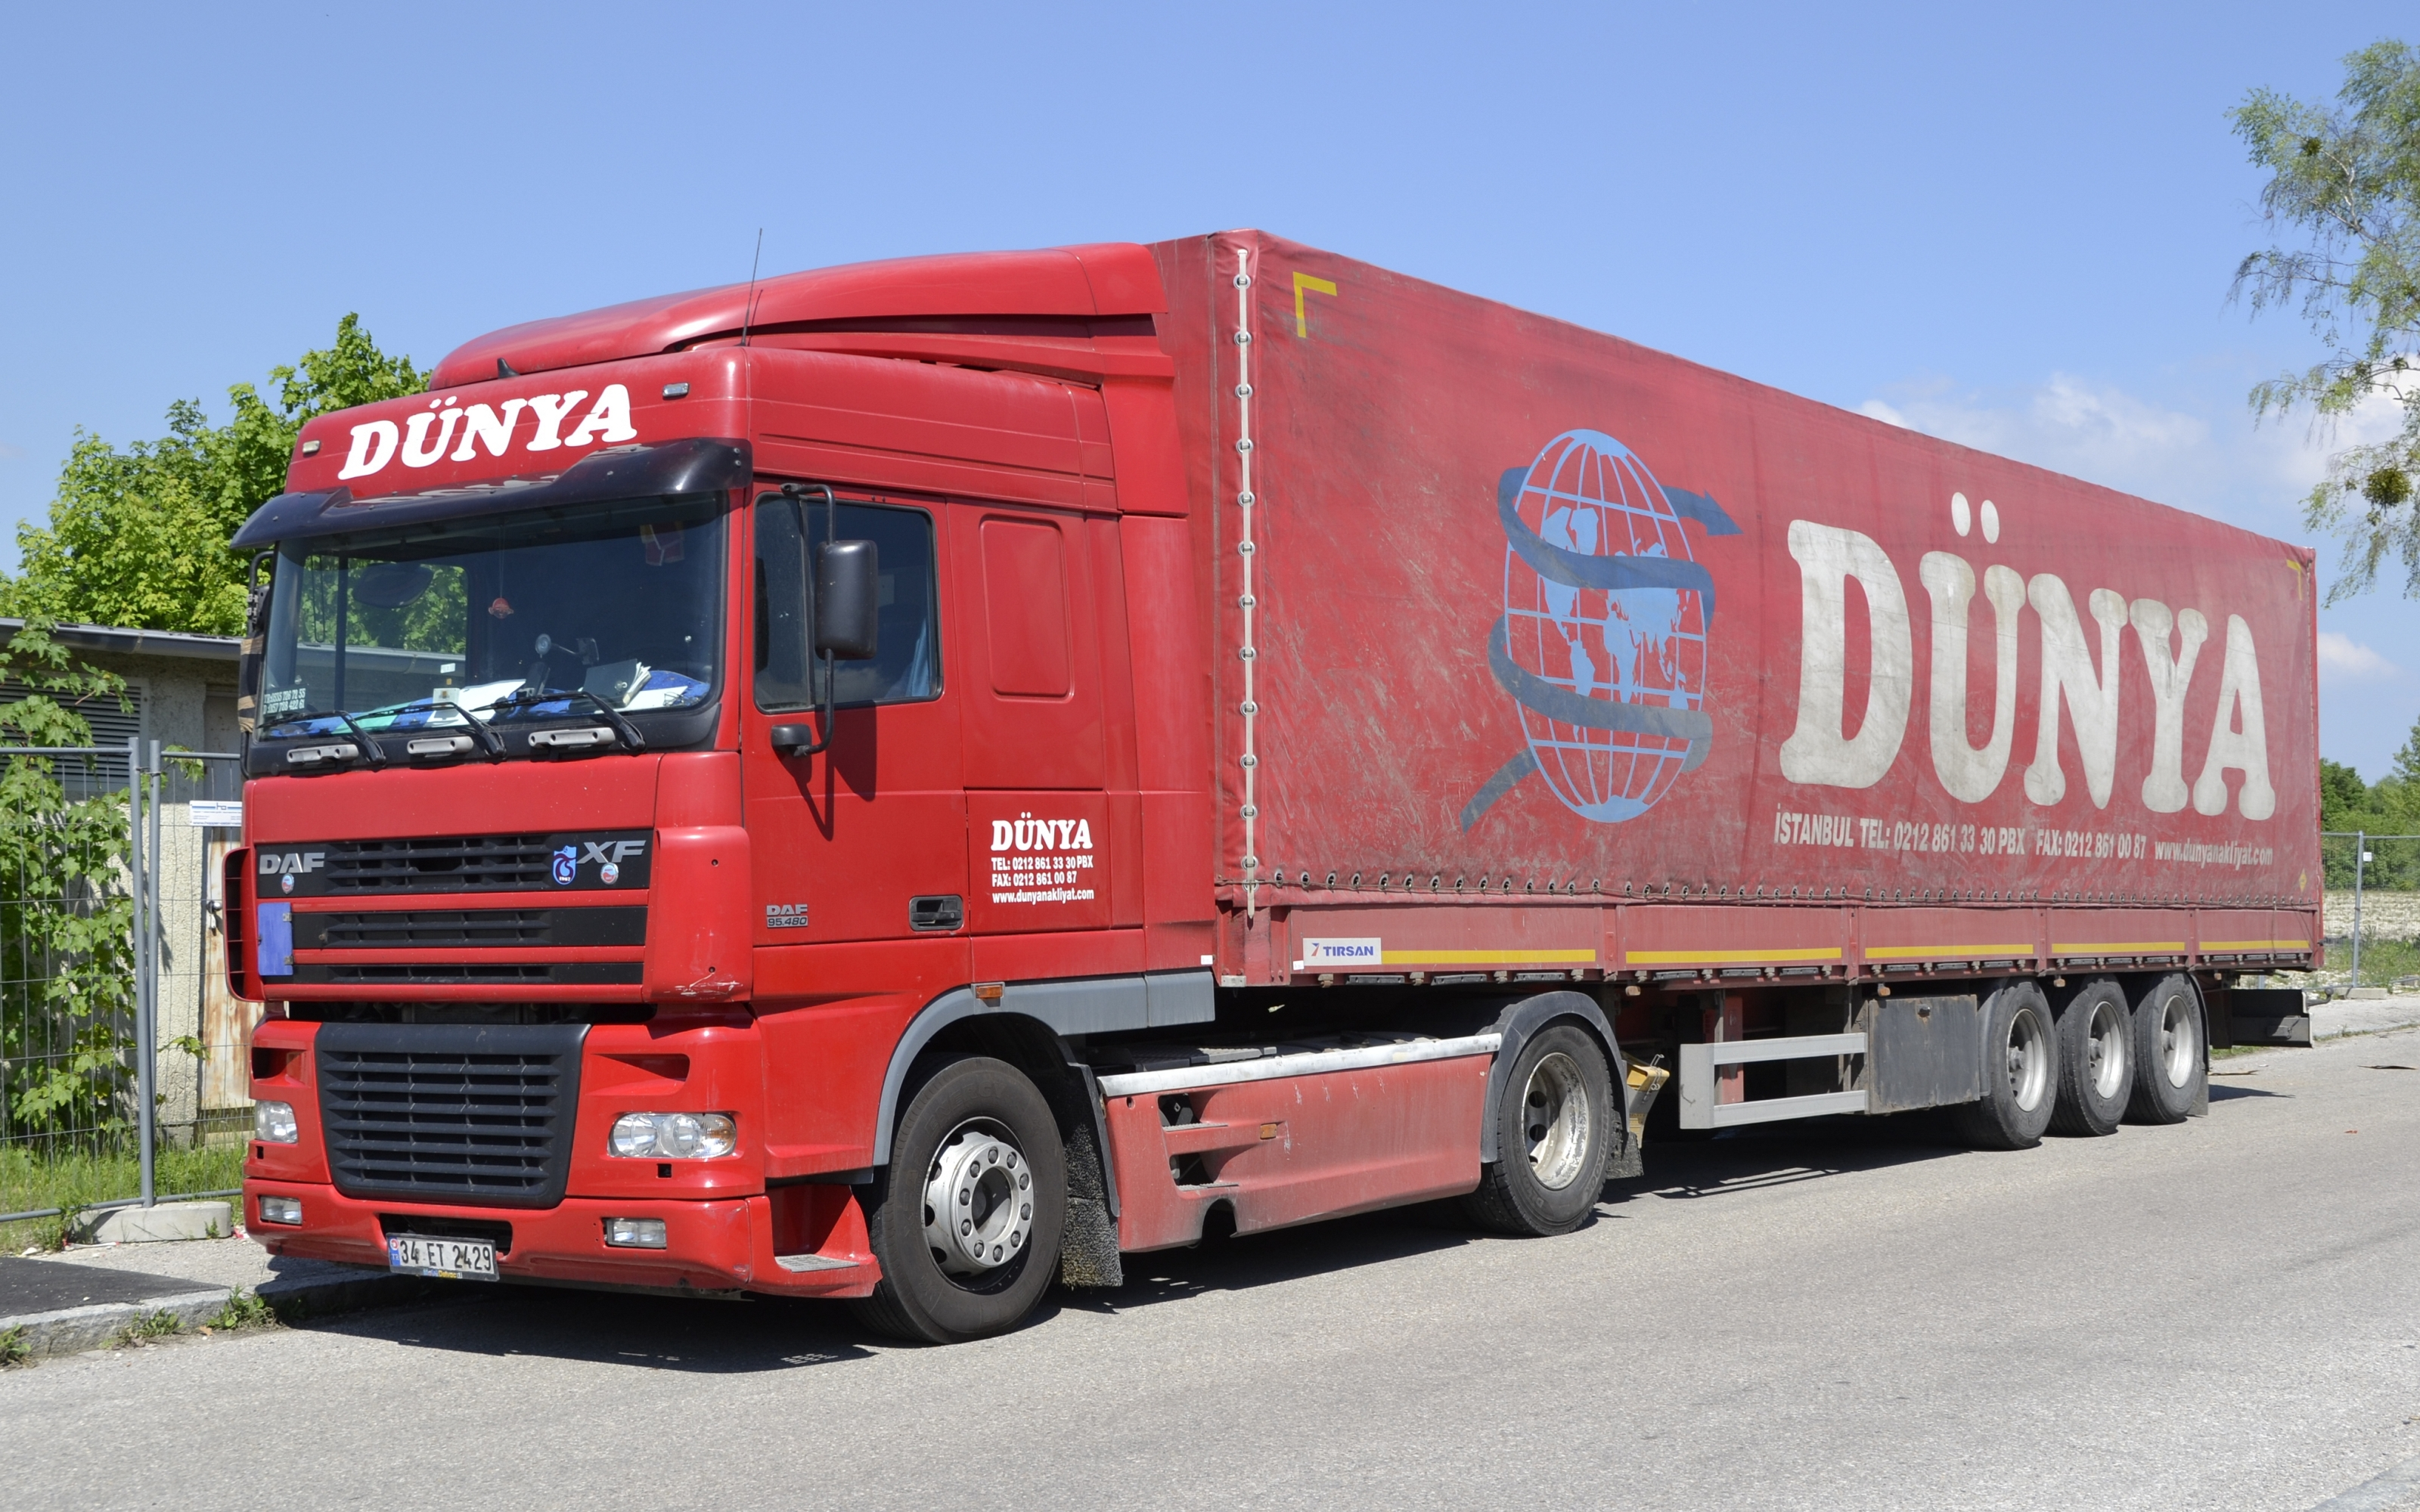 File:Turkish DAF XF truck in Munich.jpg - Wikimedia Commons